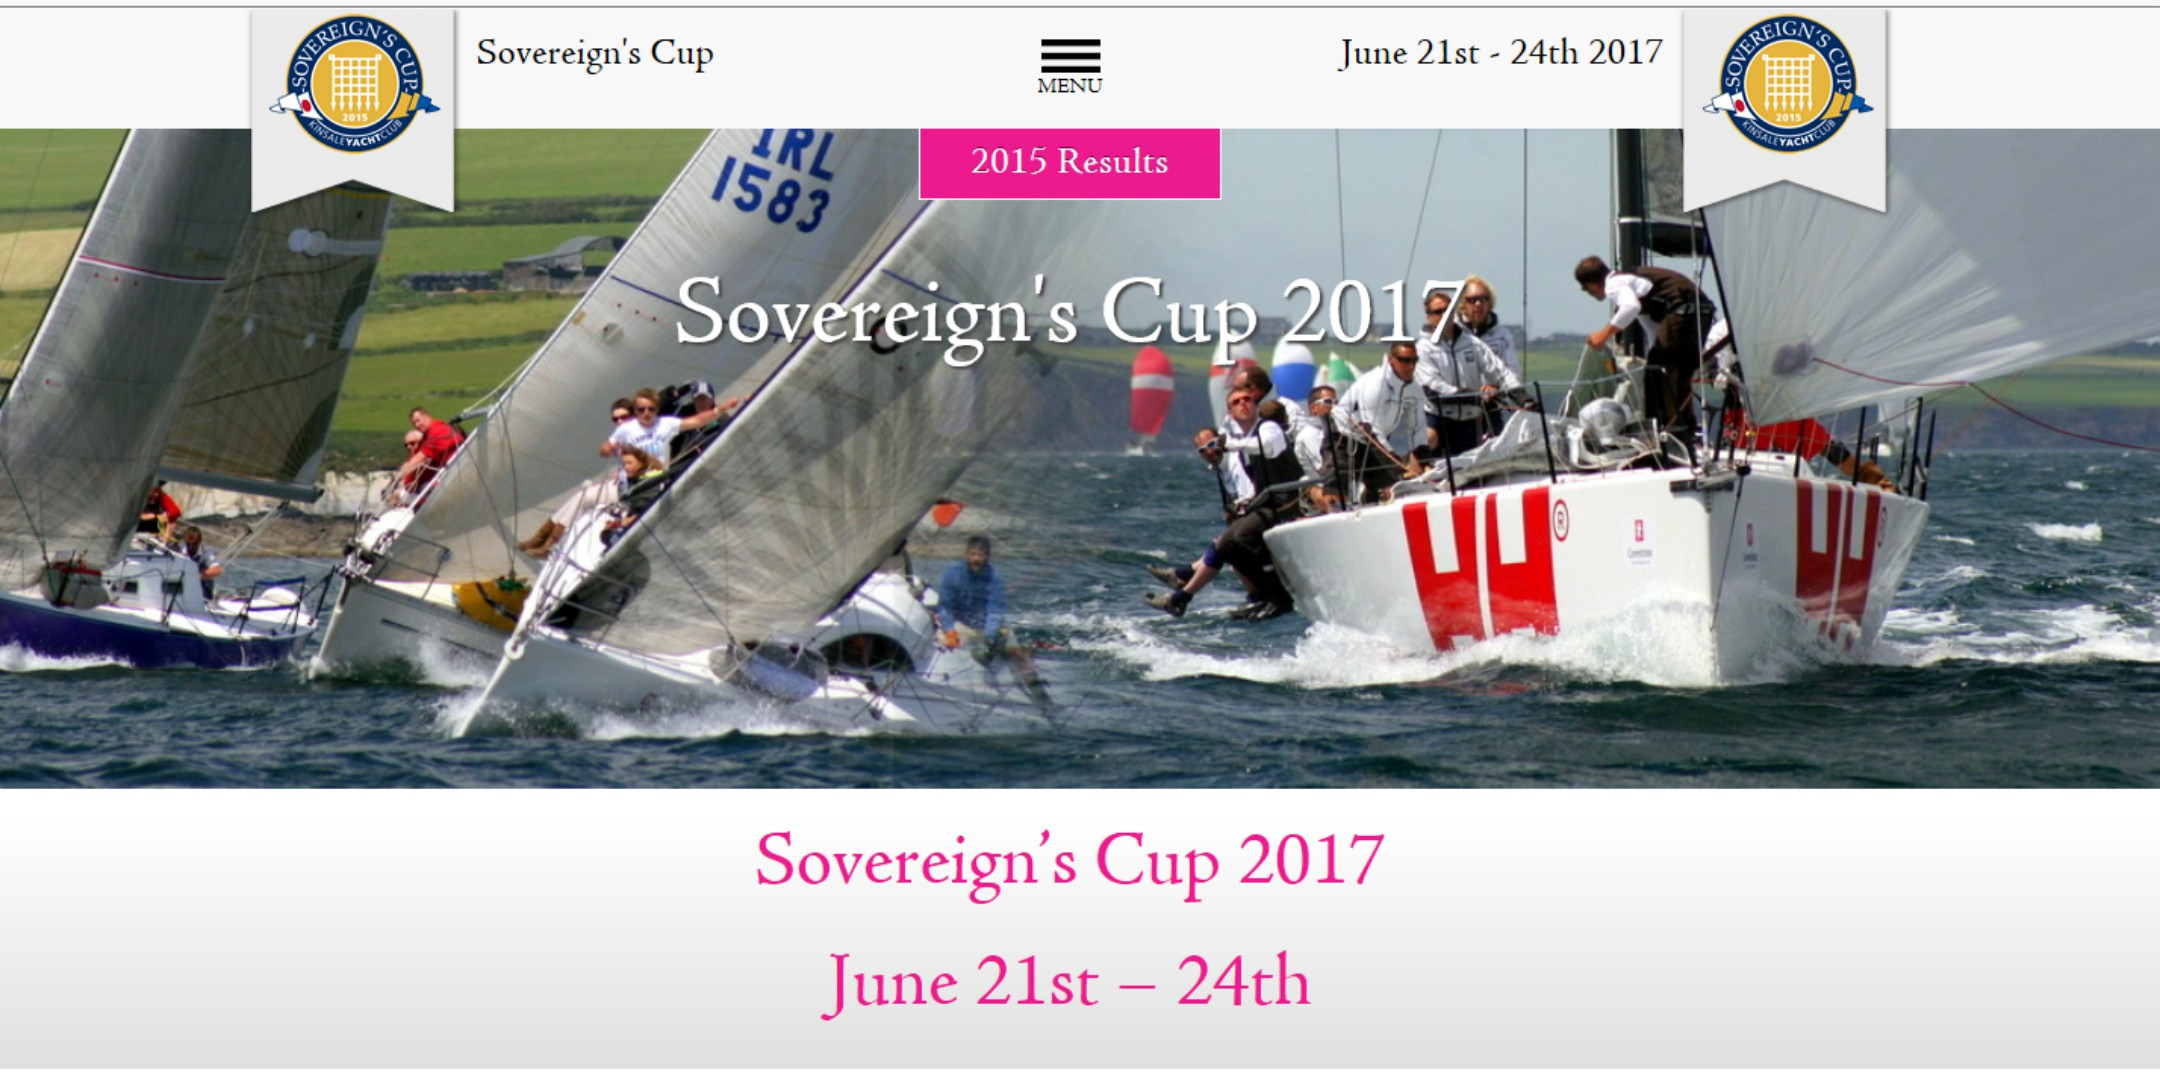 Sovereigns Cup 2017